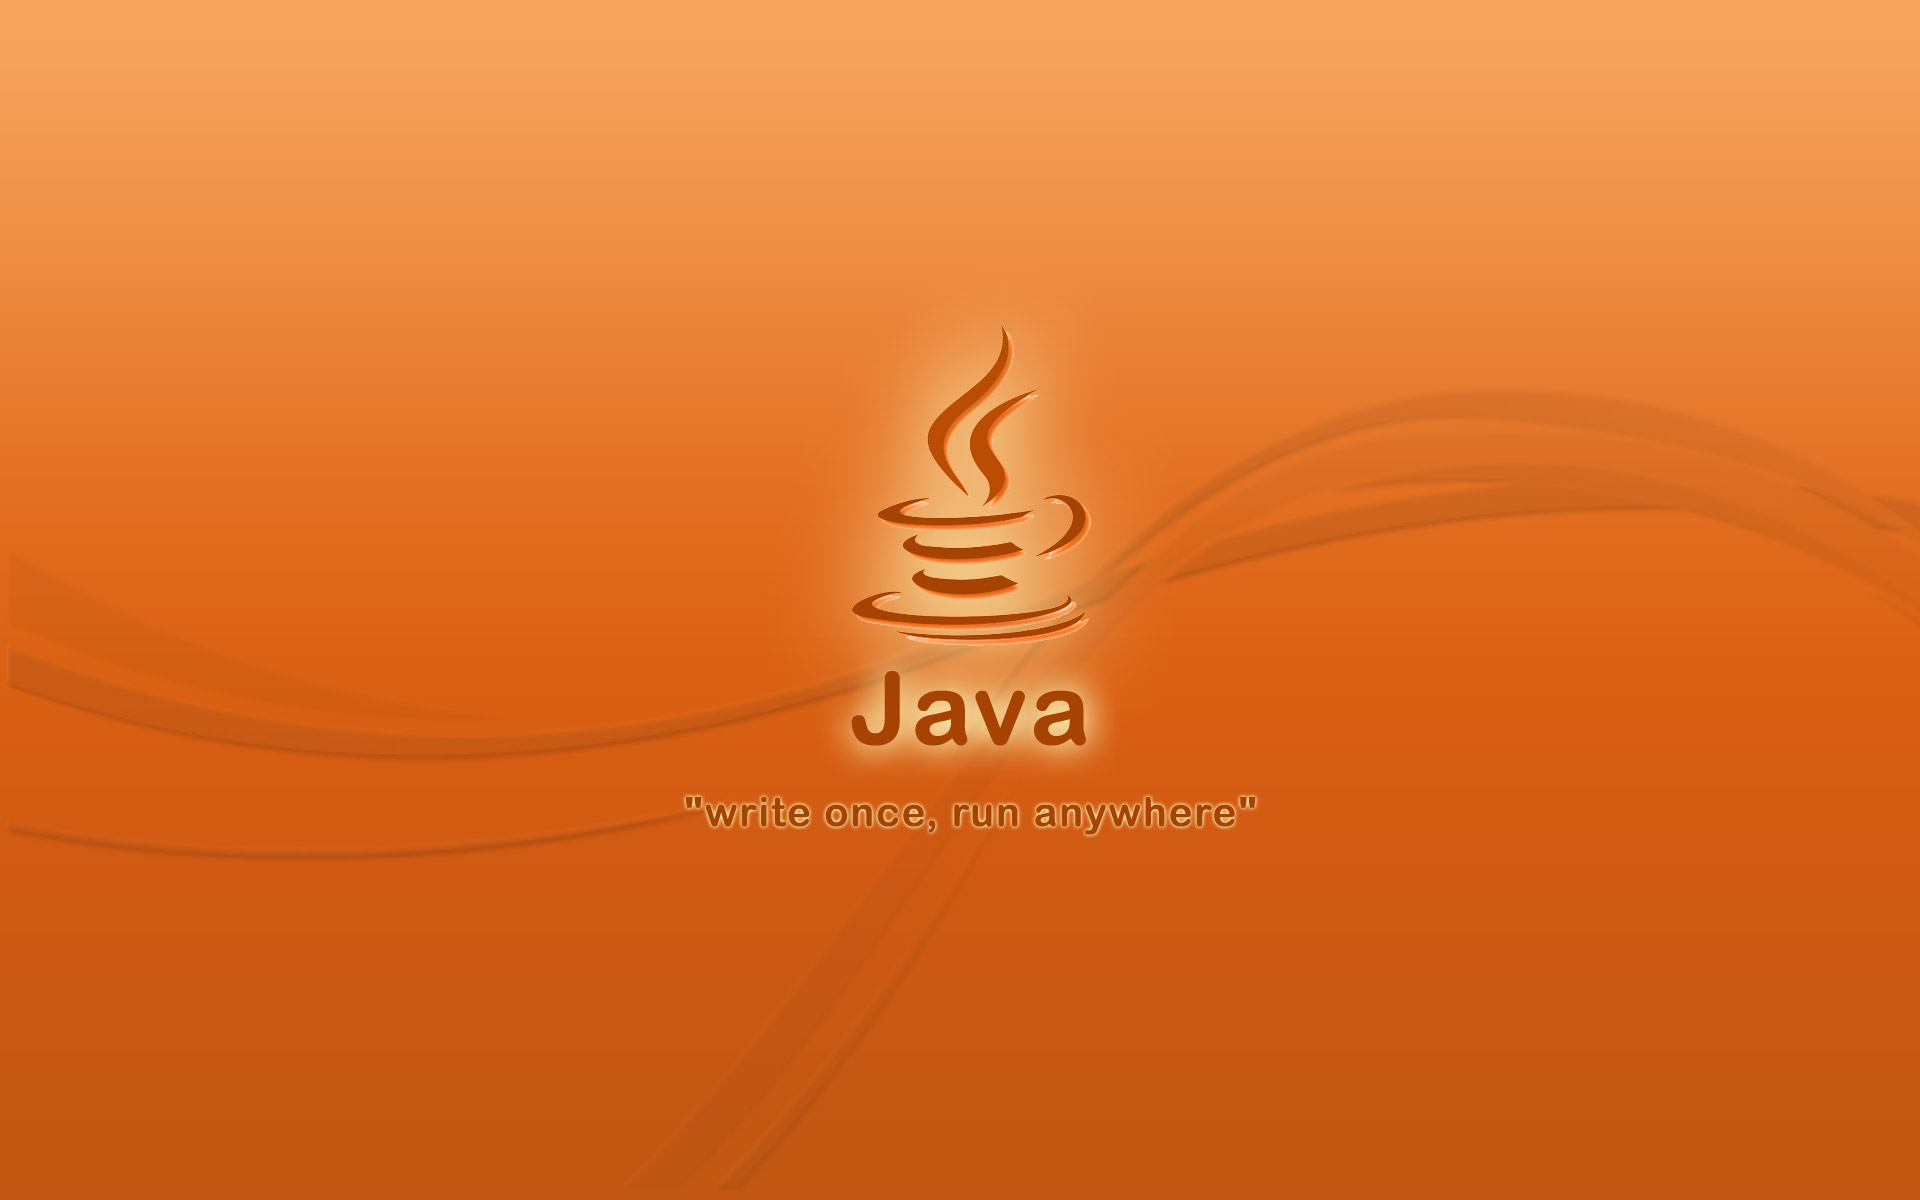 Wallpaper download java - Free Download Java Wallpaper